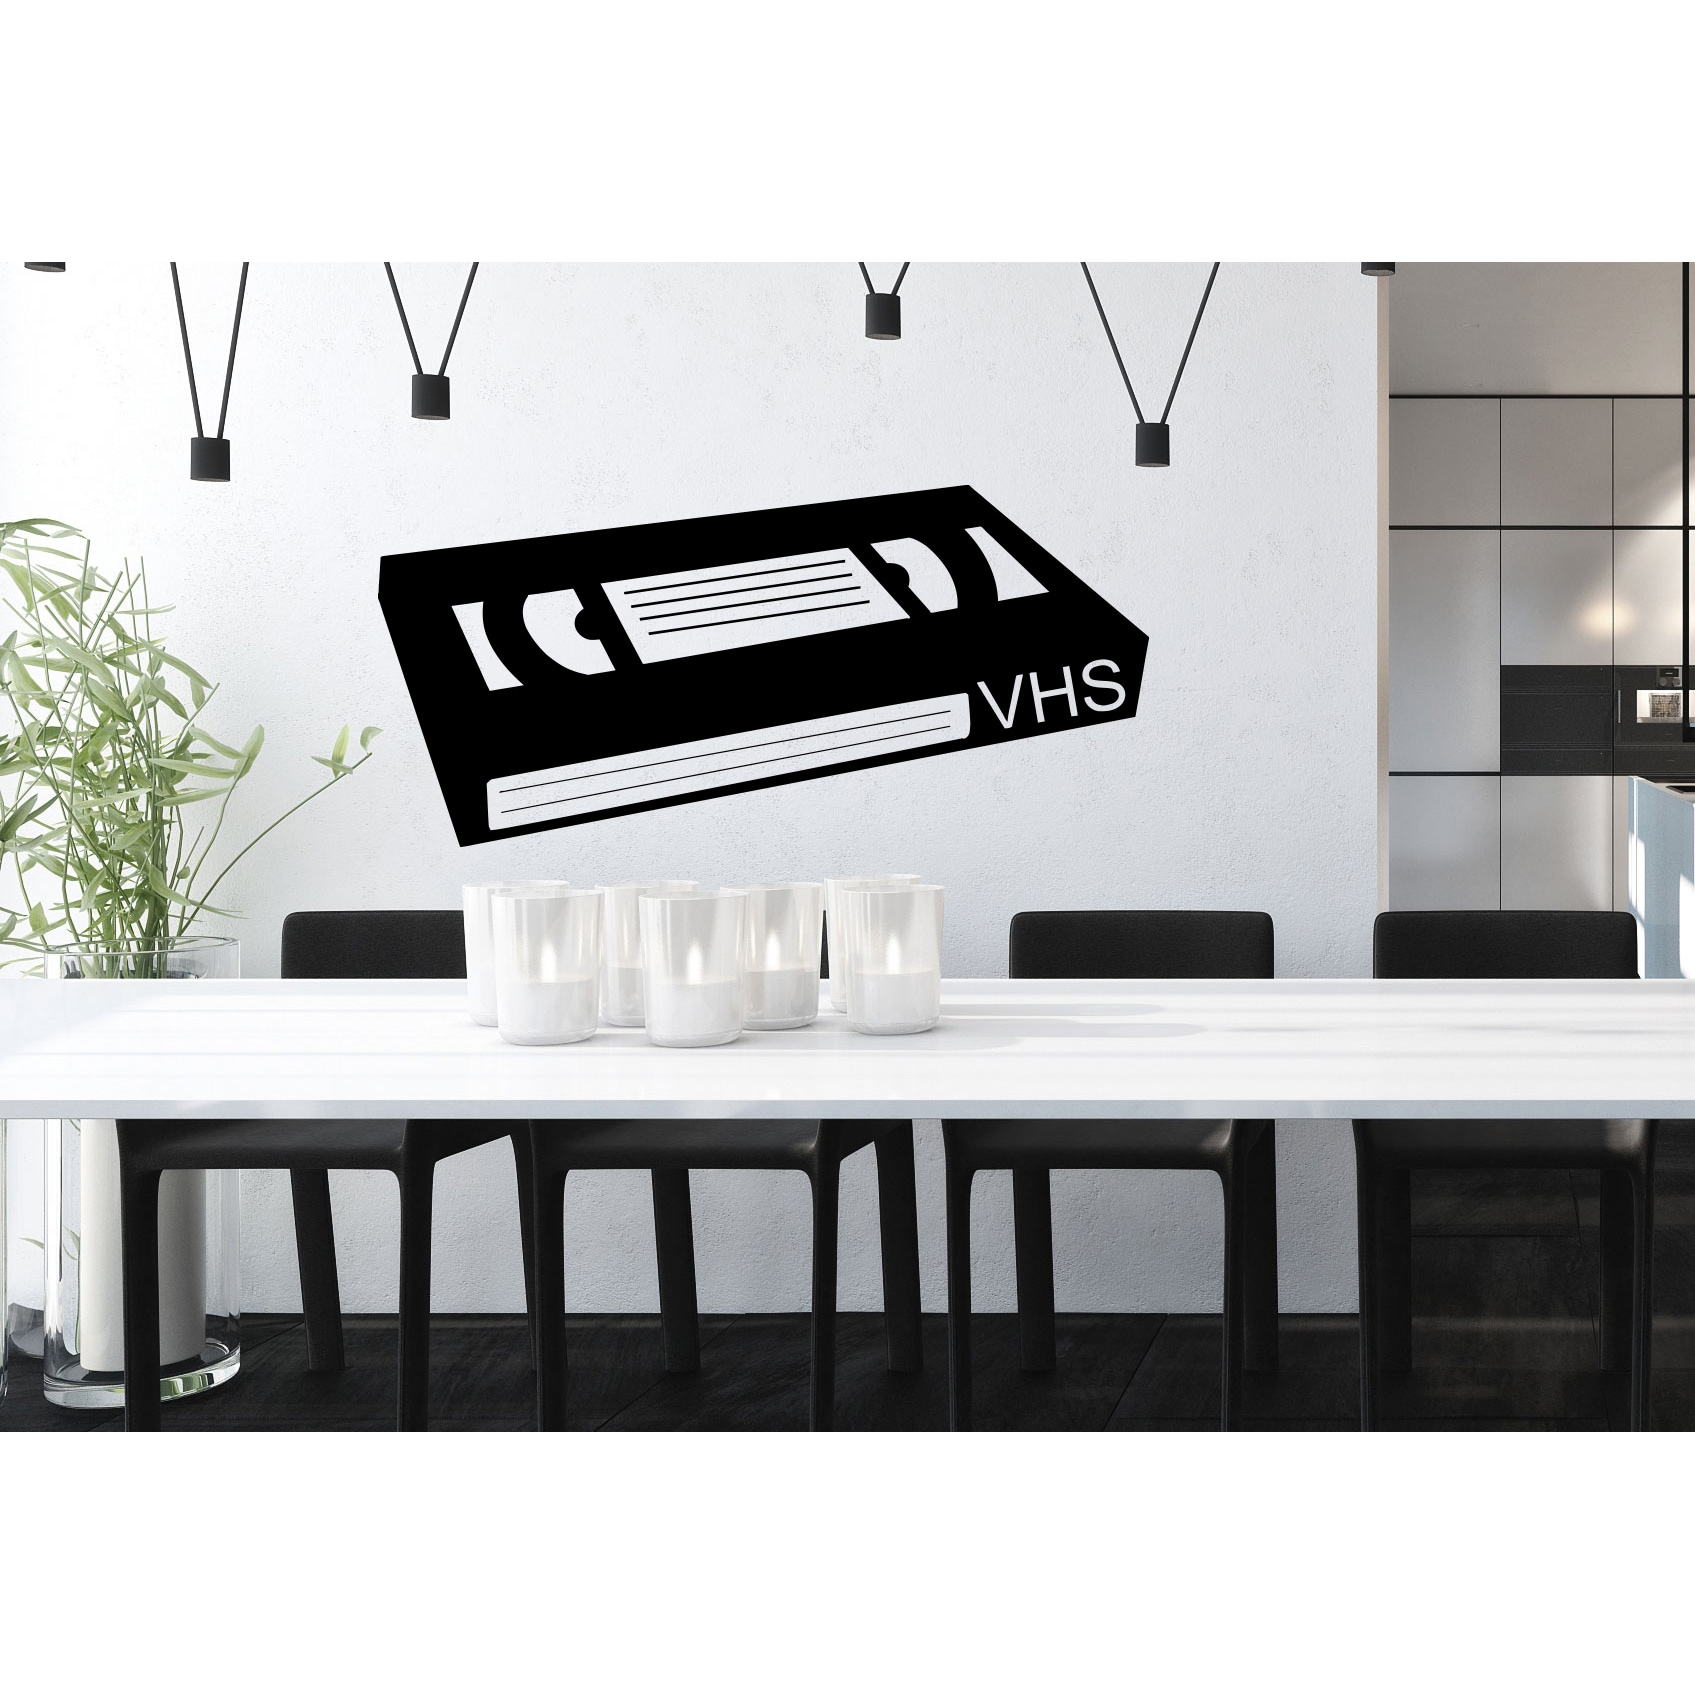 VCR tape Wall Art Sticker Decal (22 inches x 28 inches), ...